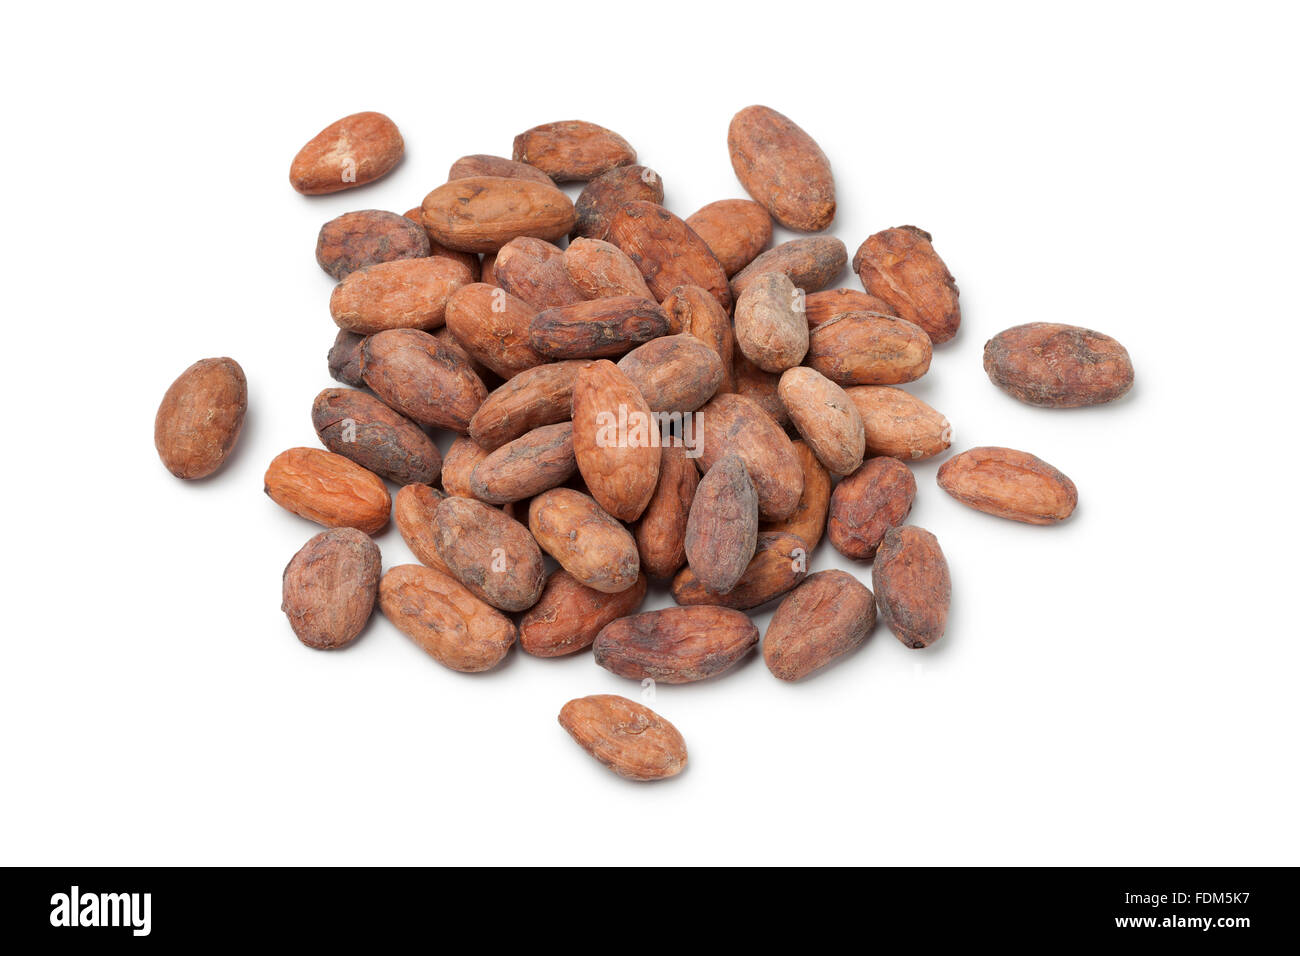 Fair trade cocao beans on white background - Stock Image